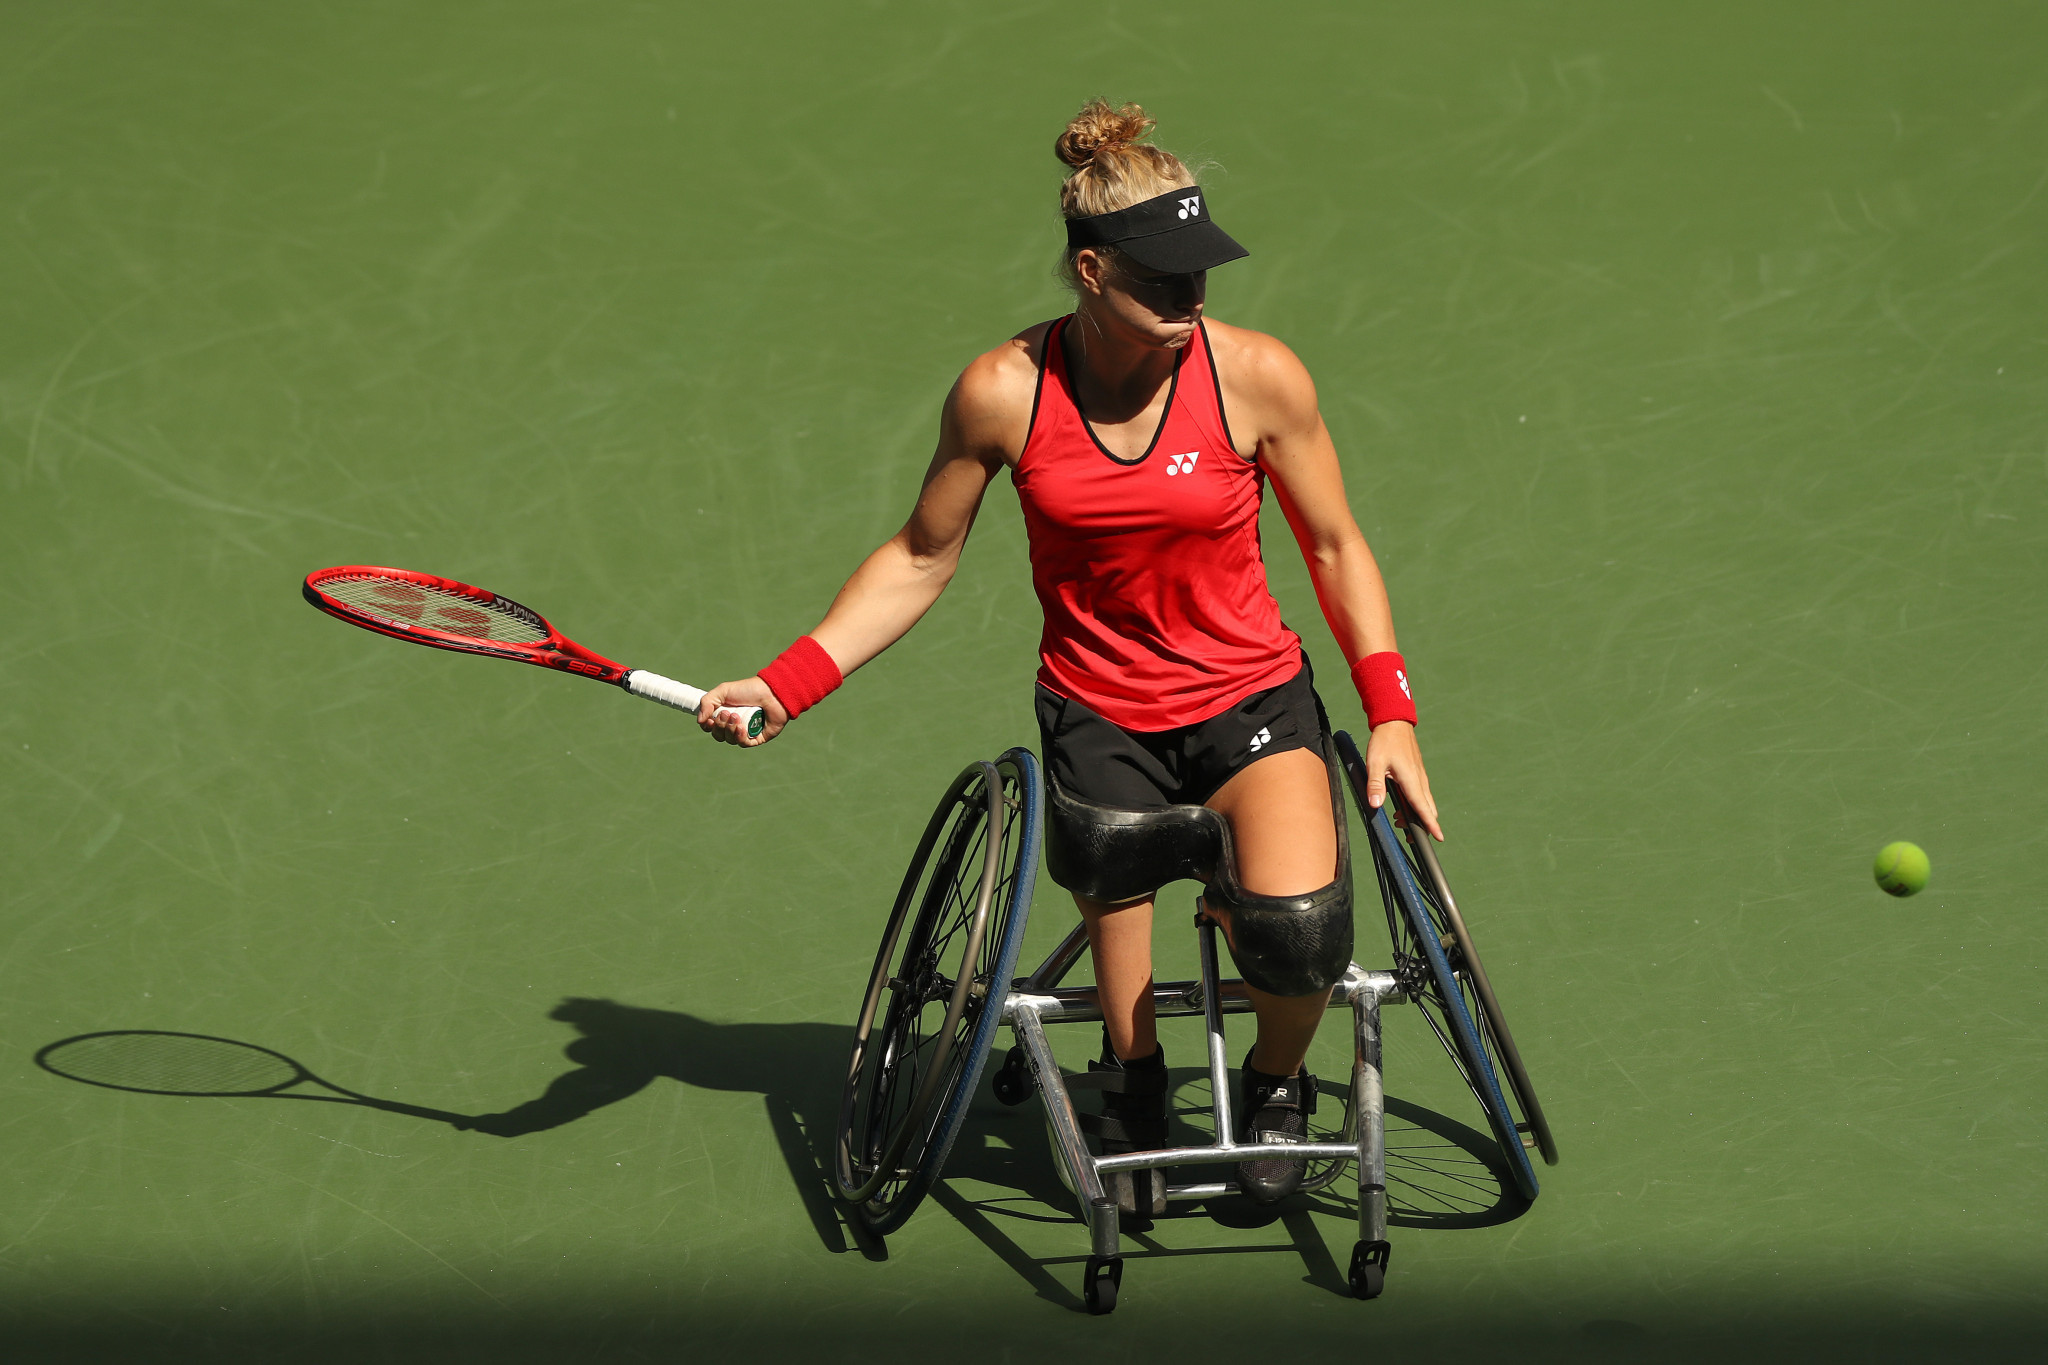 Diede De Groot of the Netherlands won at the US Open and French Open this year ©Getty Images